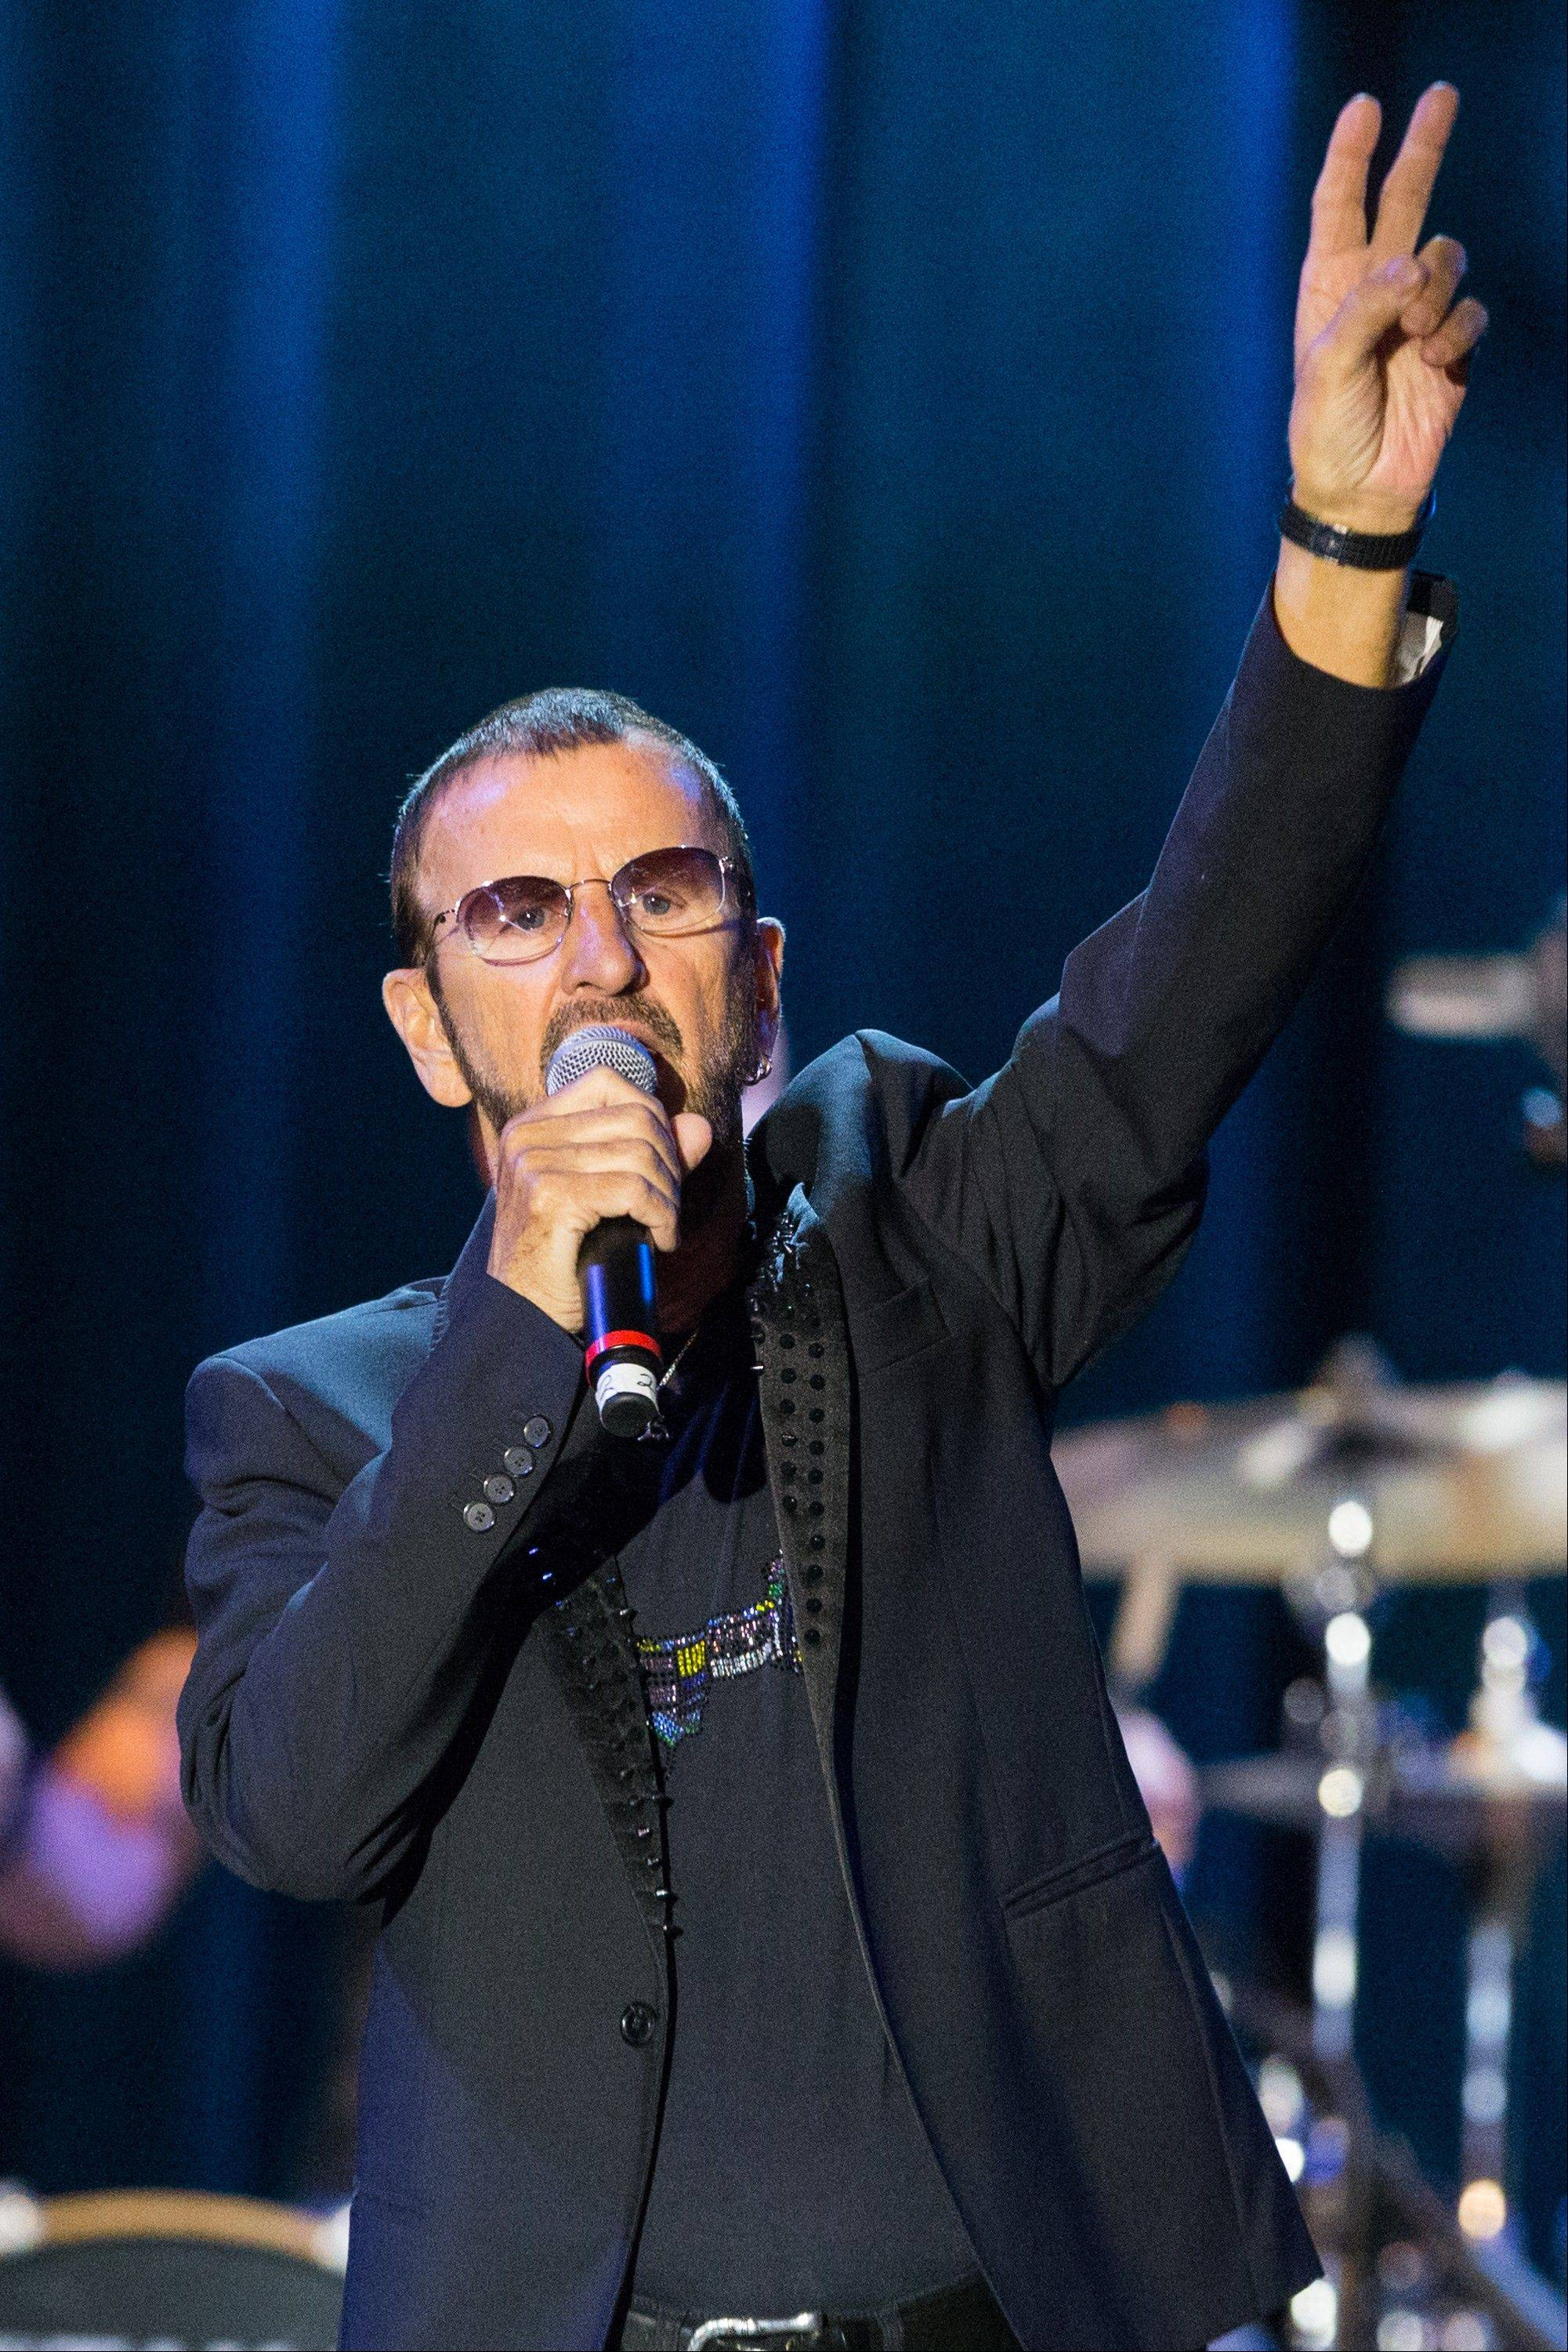 Musician Ringo Starr performs onstage during the David Lynch Foundation Honors Ringo Star �A Lifetime of Peace & Love� event held at the El Rey Theatre on Monday in Los Angeles.